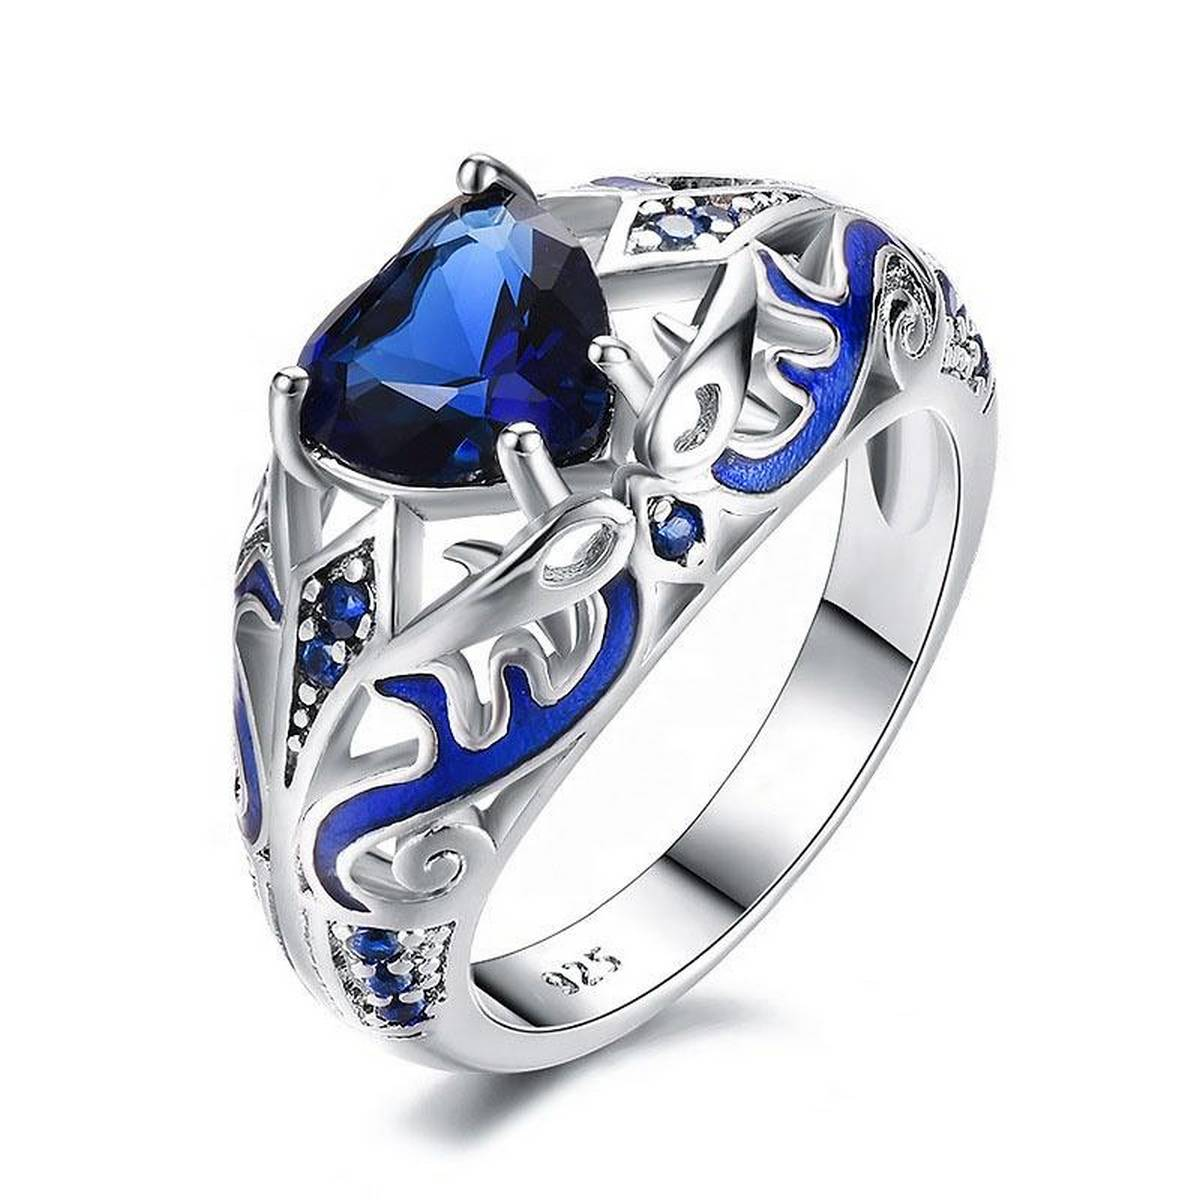 Fashion SS Engagement Party Collection Silver Plating Blue Love Diamond CZ Gem Topaz Rings for Girls & Women - RS0258